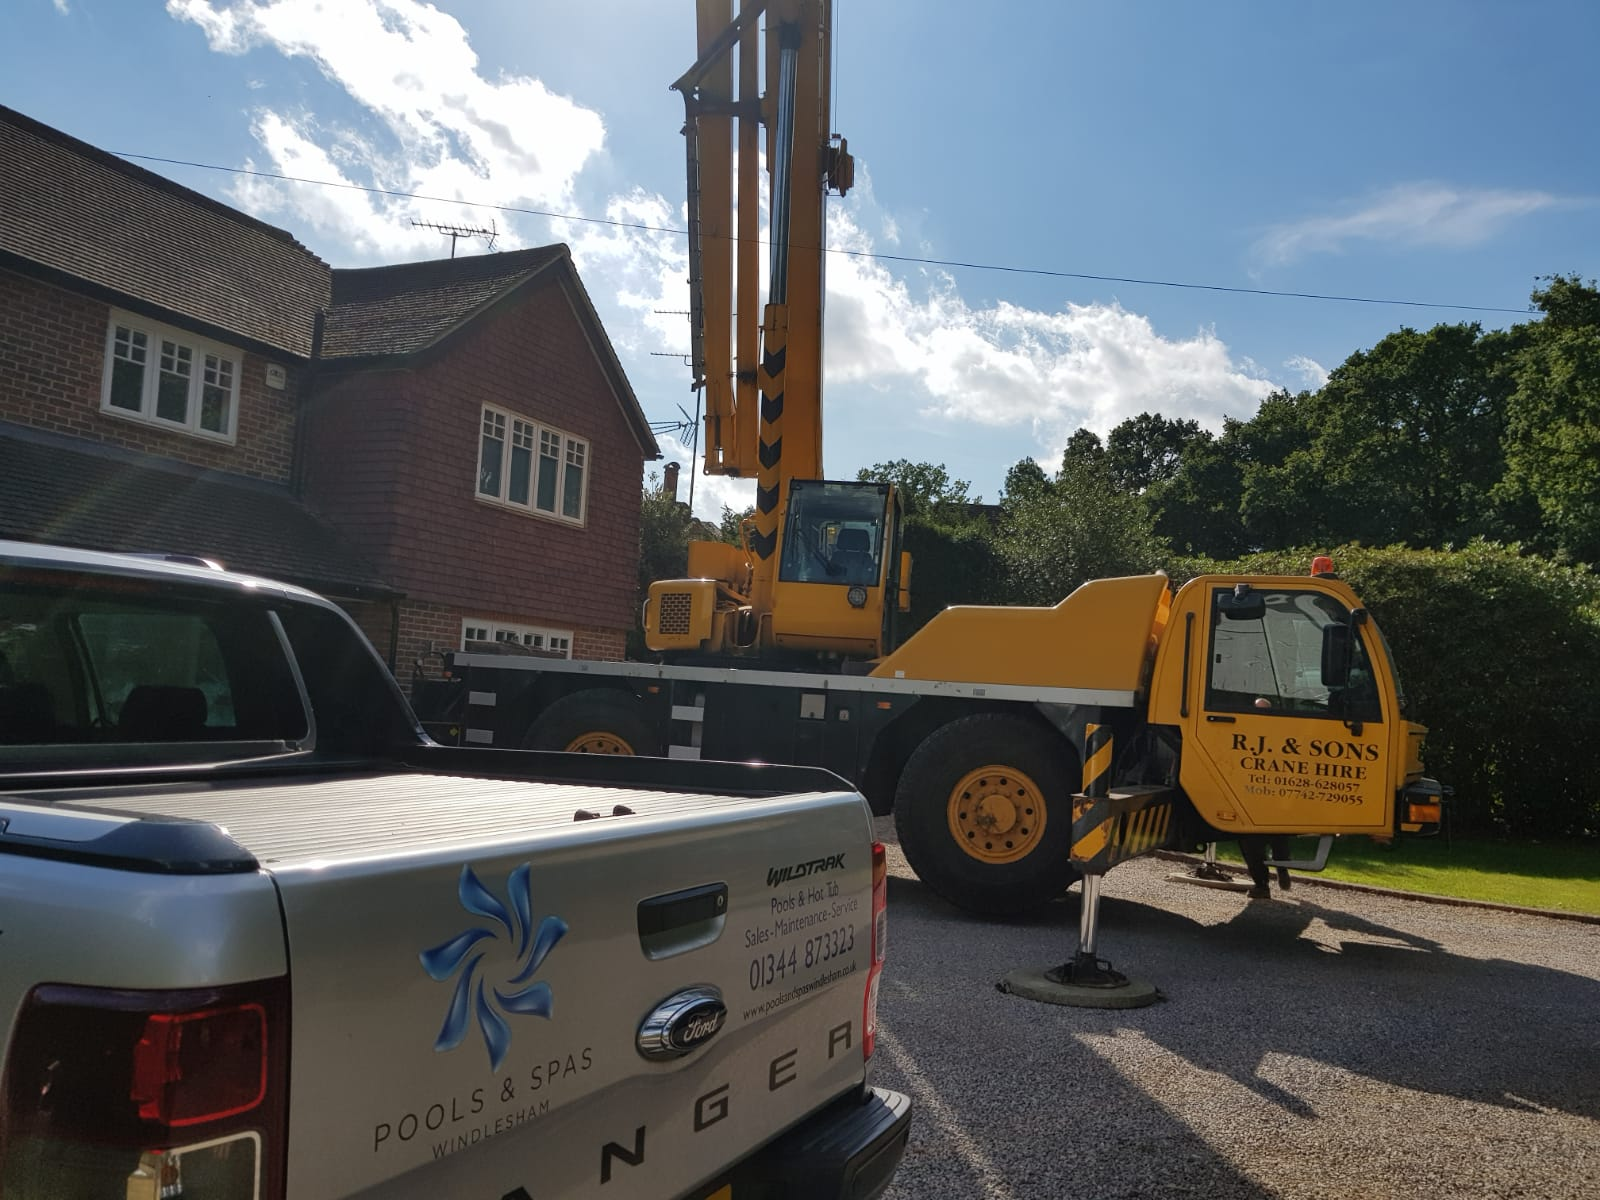 Rj and sons crane hire